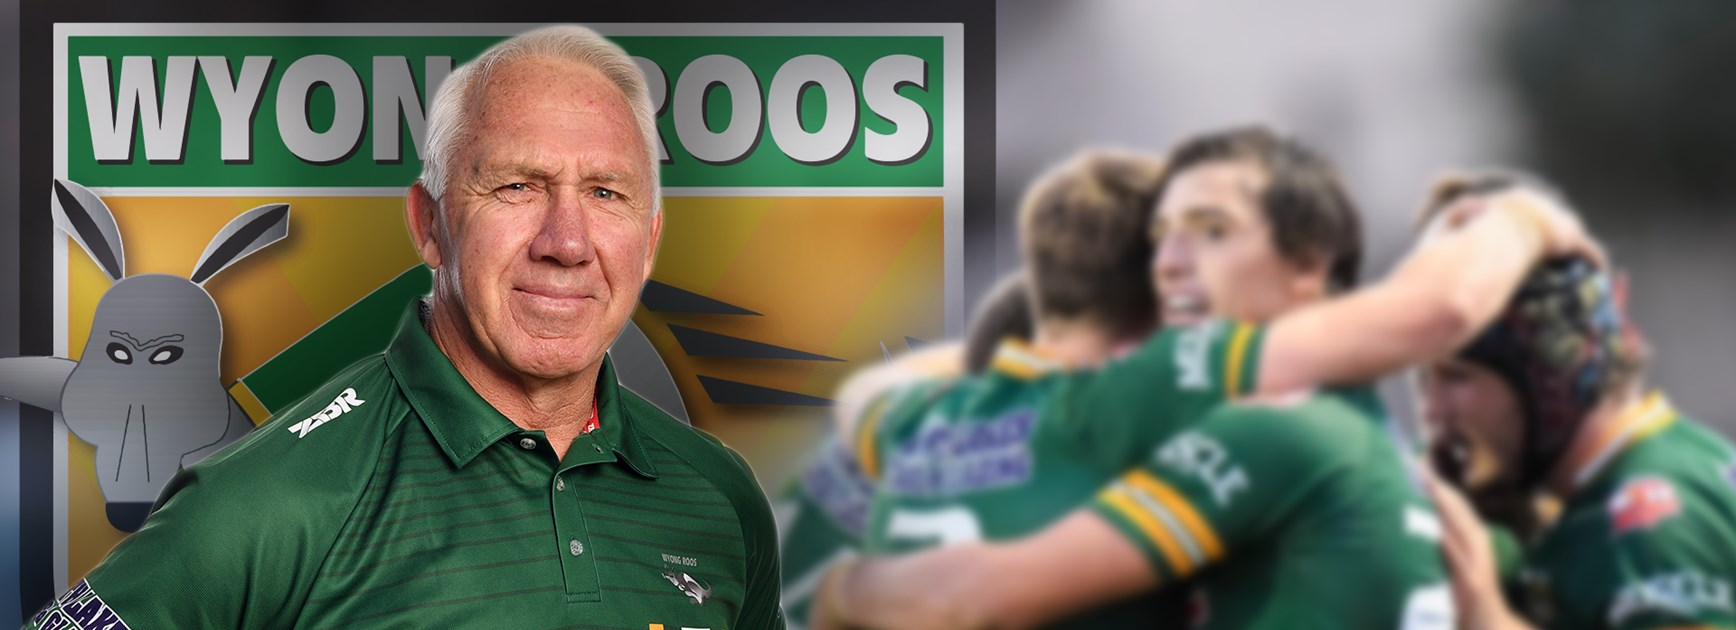 Rip's Roos Not Ready to Bow Out